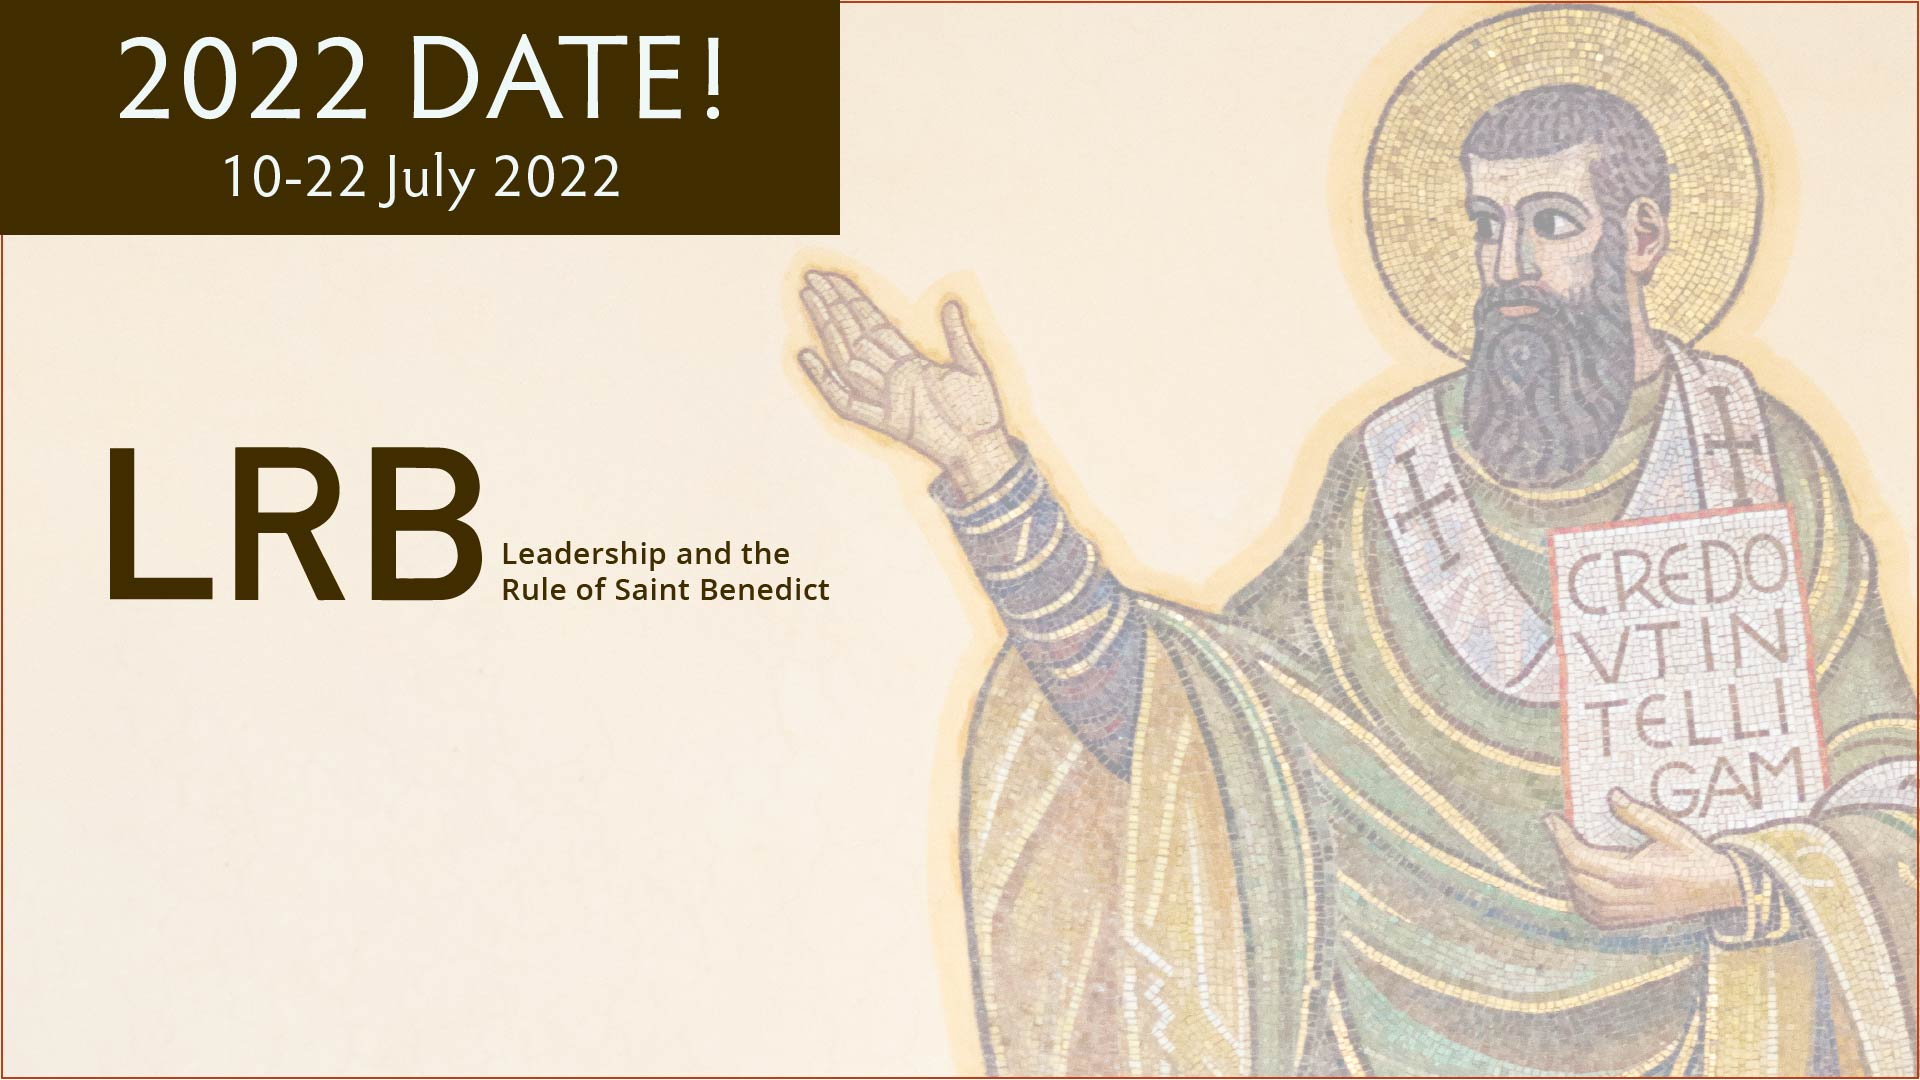 Leadership and the Rule of Saint Benedict graphic